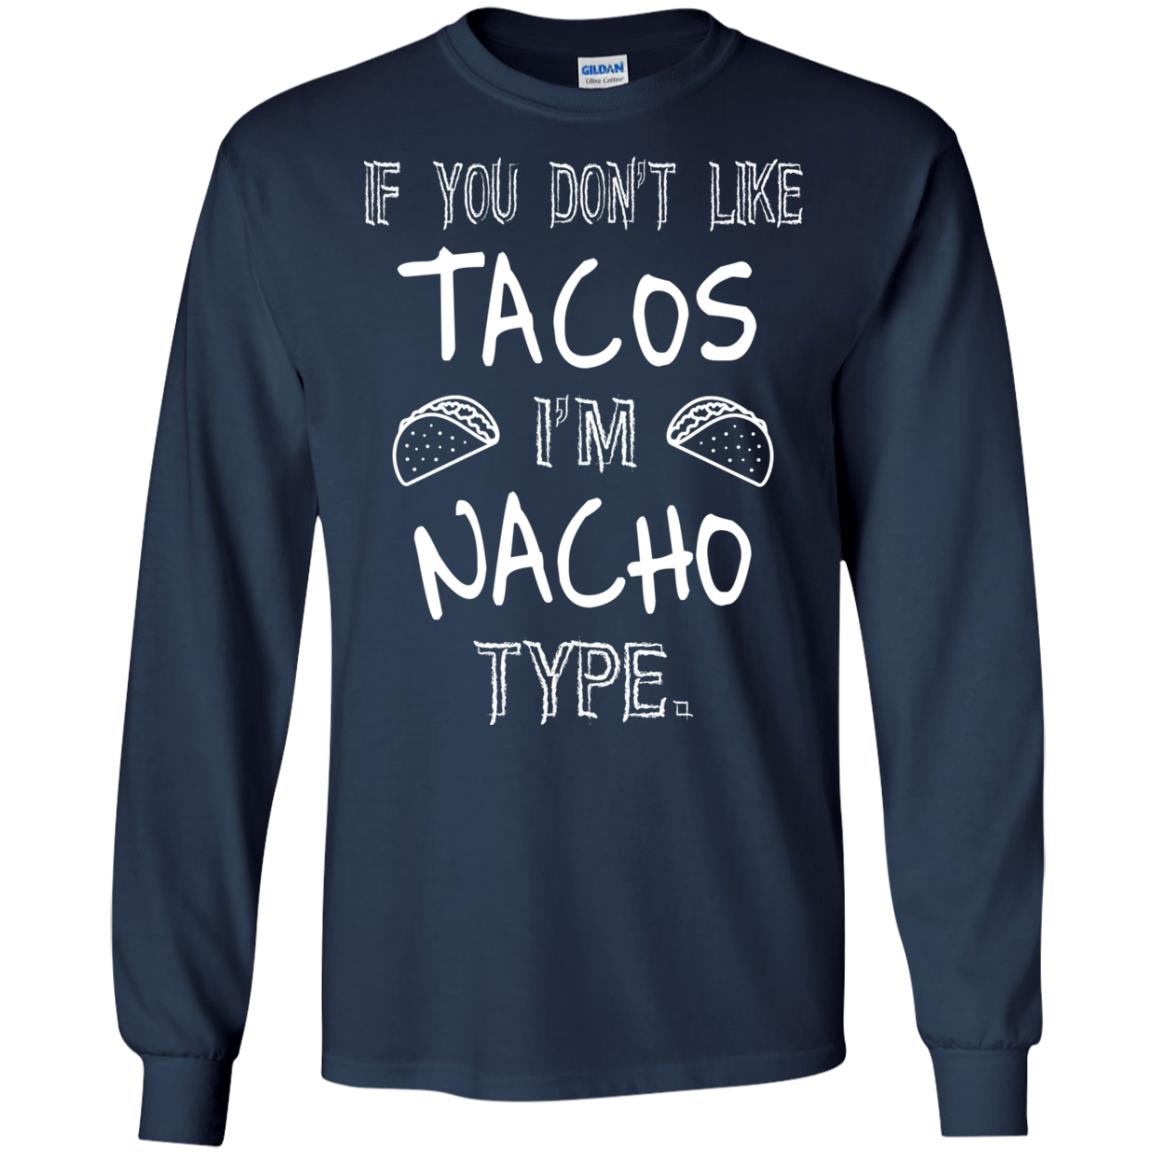 image 76px If you don't like tacos I'm Nacho Type T Shirts, Tank Top, Sweatshirt